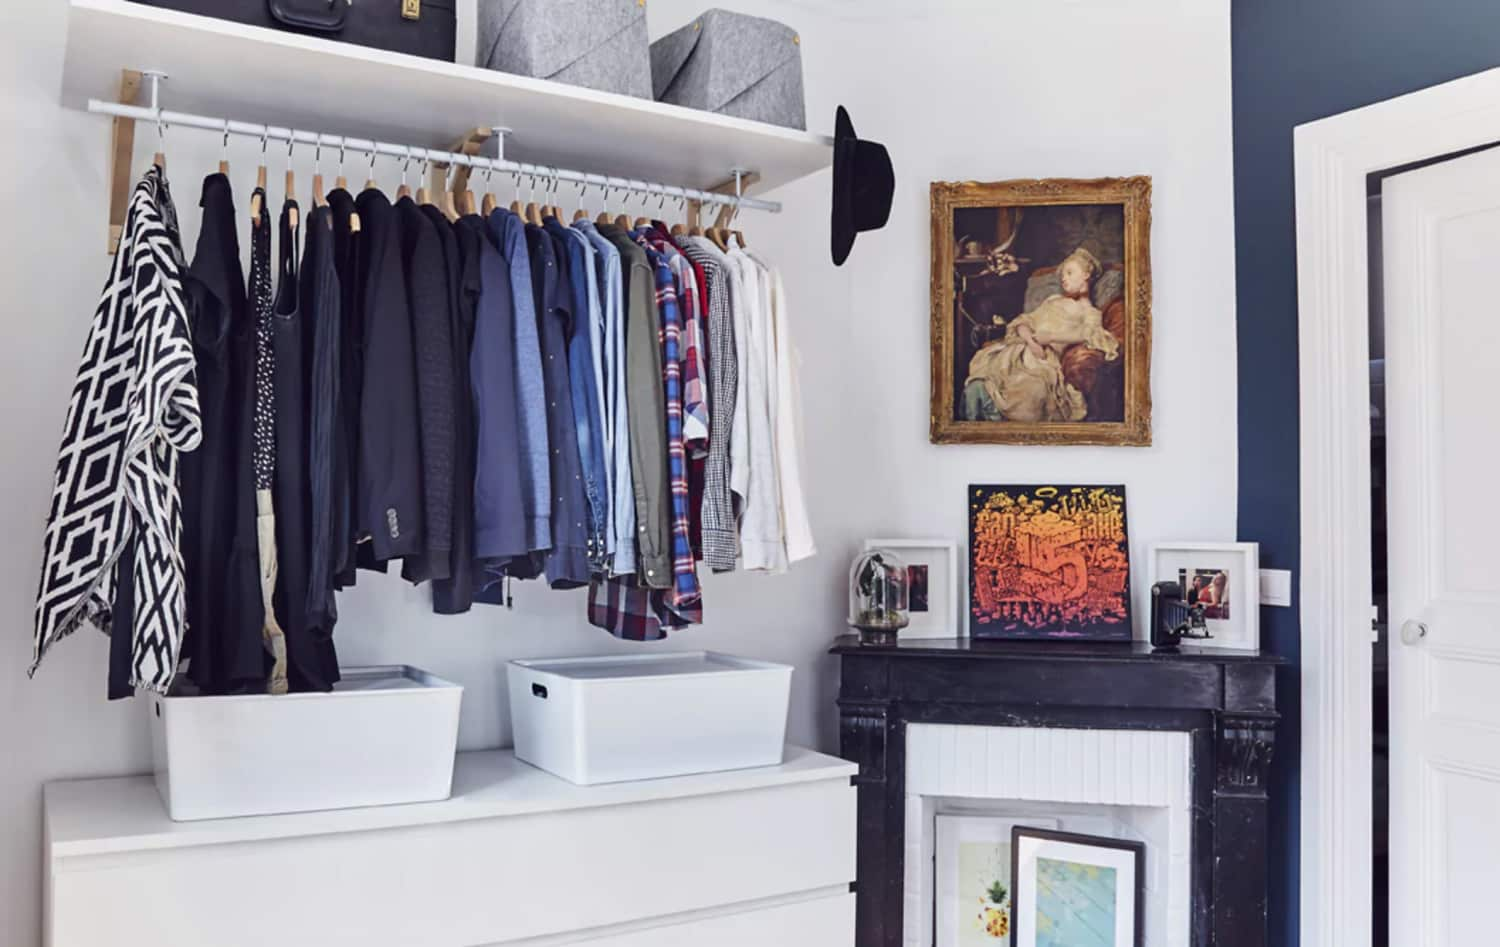 Under-$15 IKEA Finds That'll Effortlessly Organize Your Closet